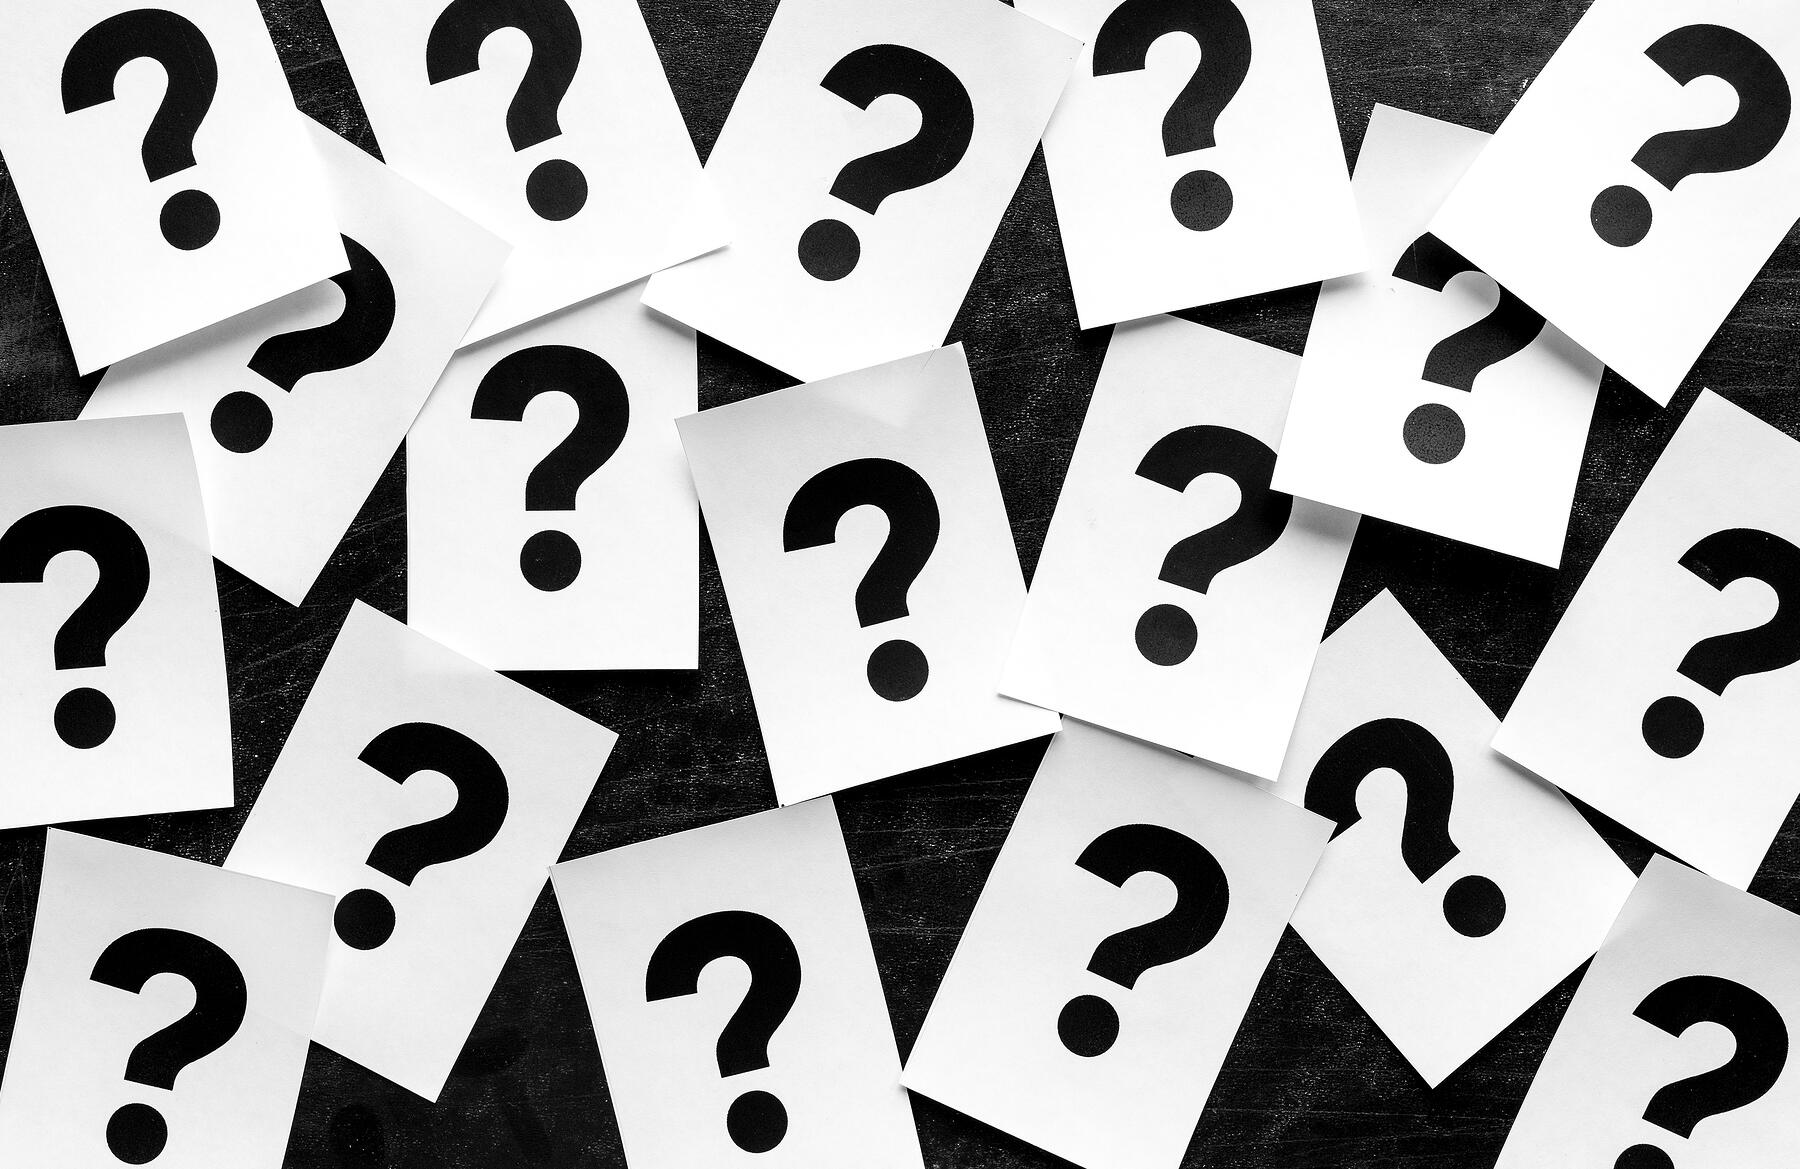 bold-black-question-marks-on-paper-cards-2BGSDX7